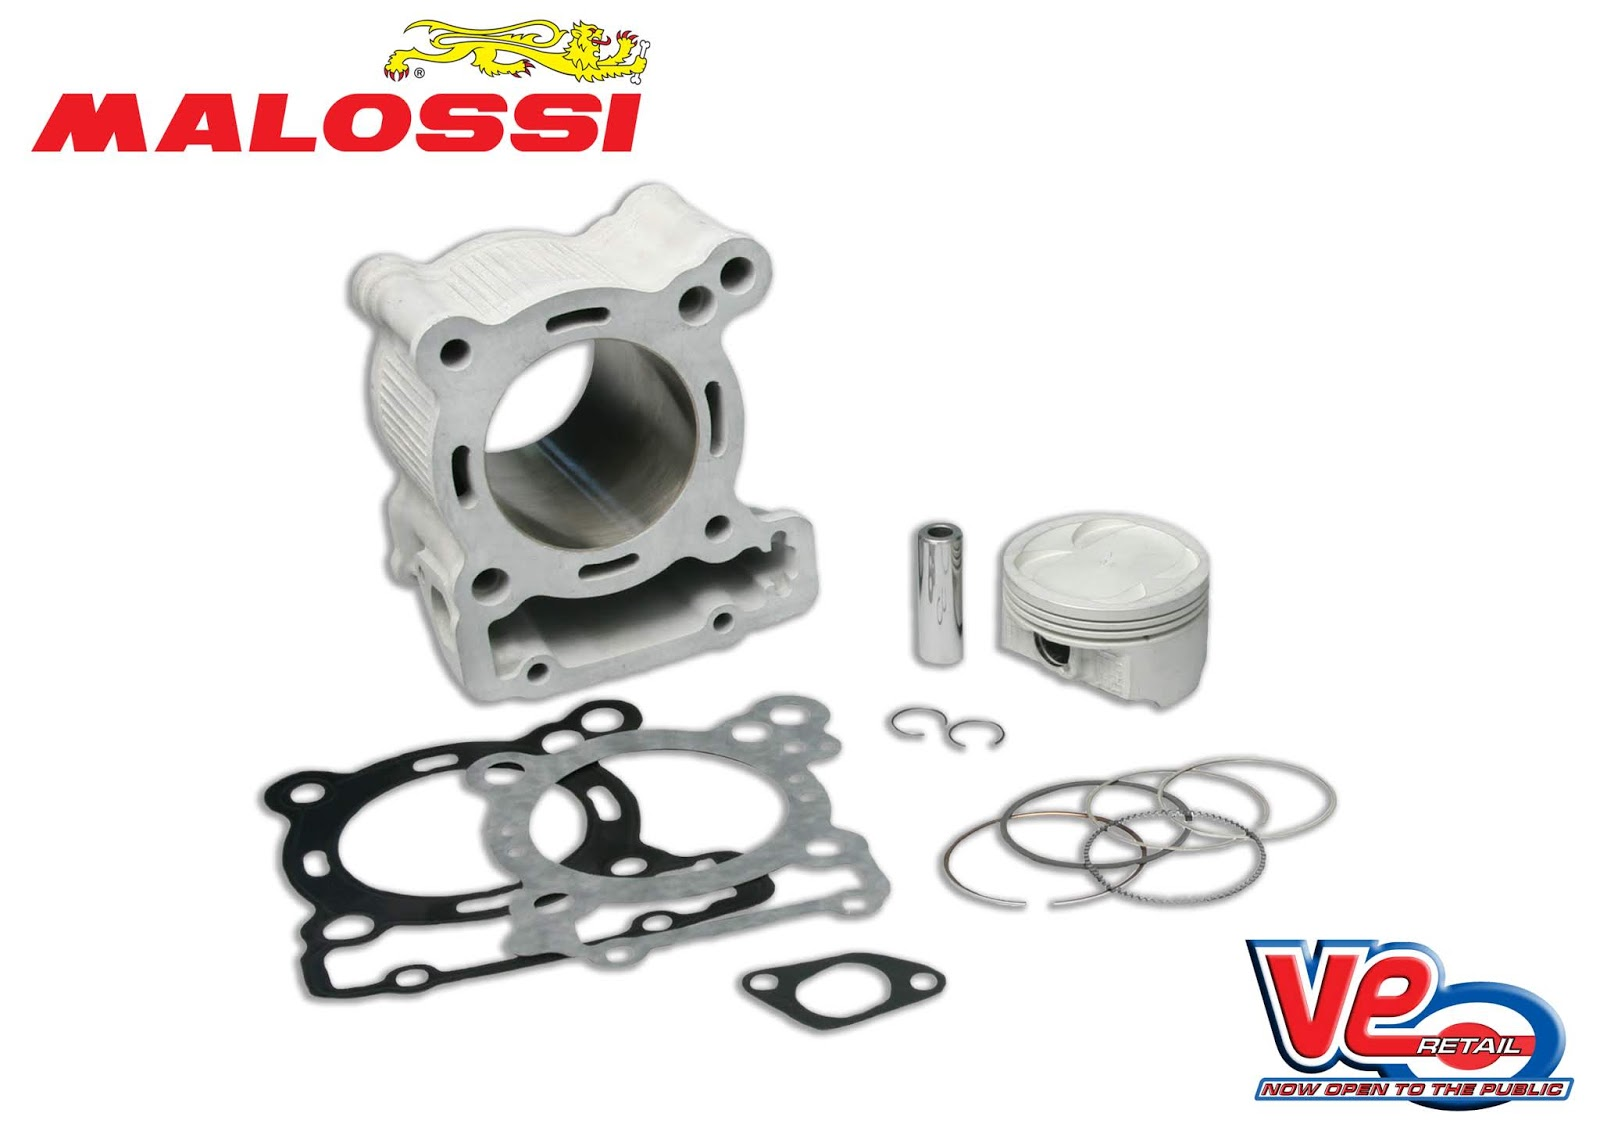 Malossi Cylinder Kit for Scomadi Leggera 200cc 4V Scooter